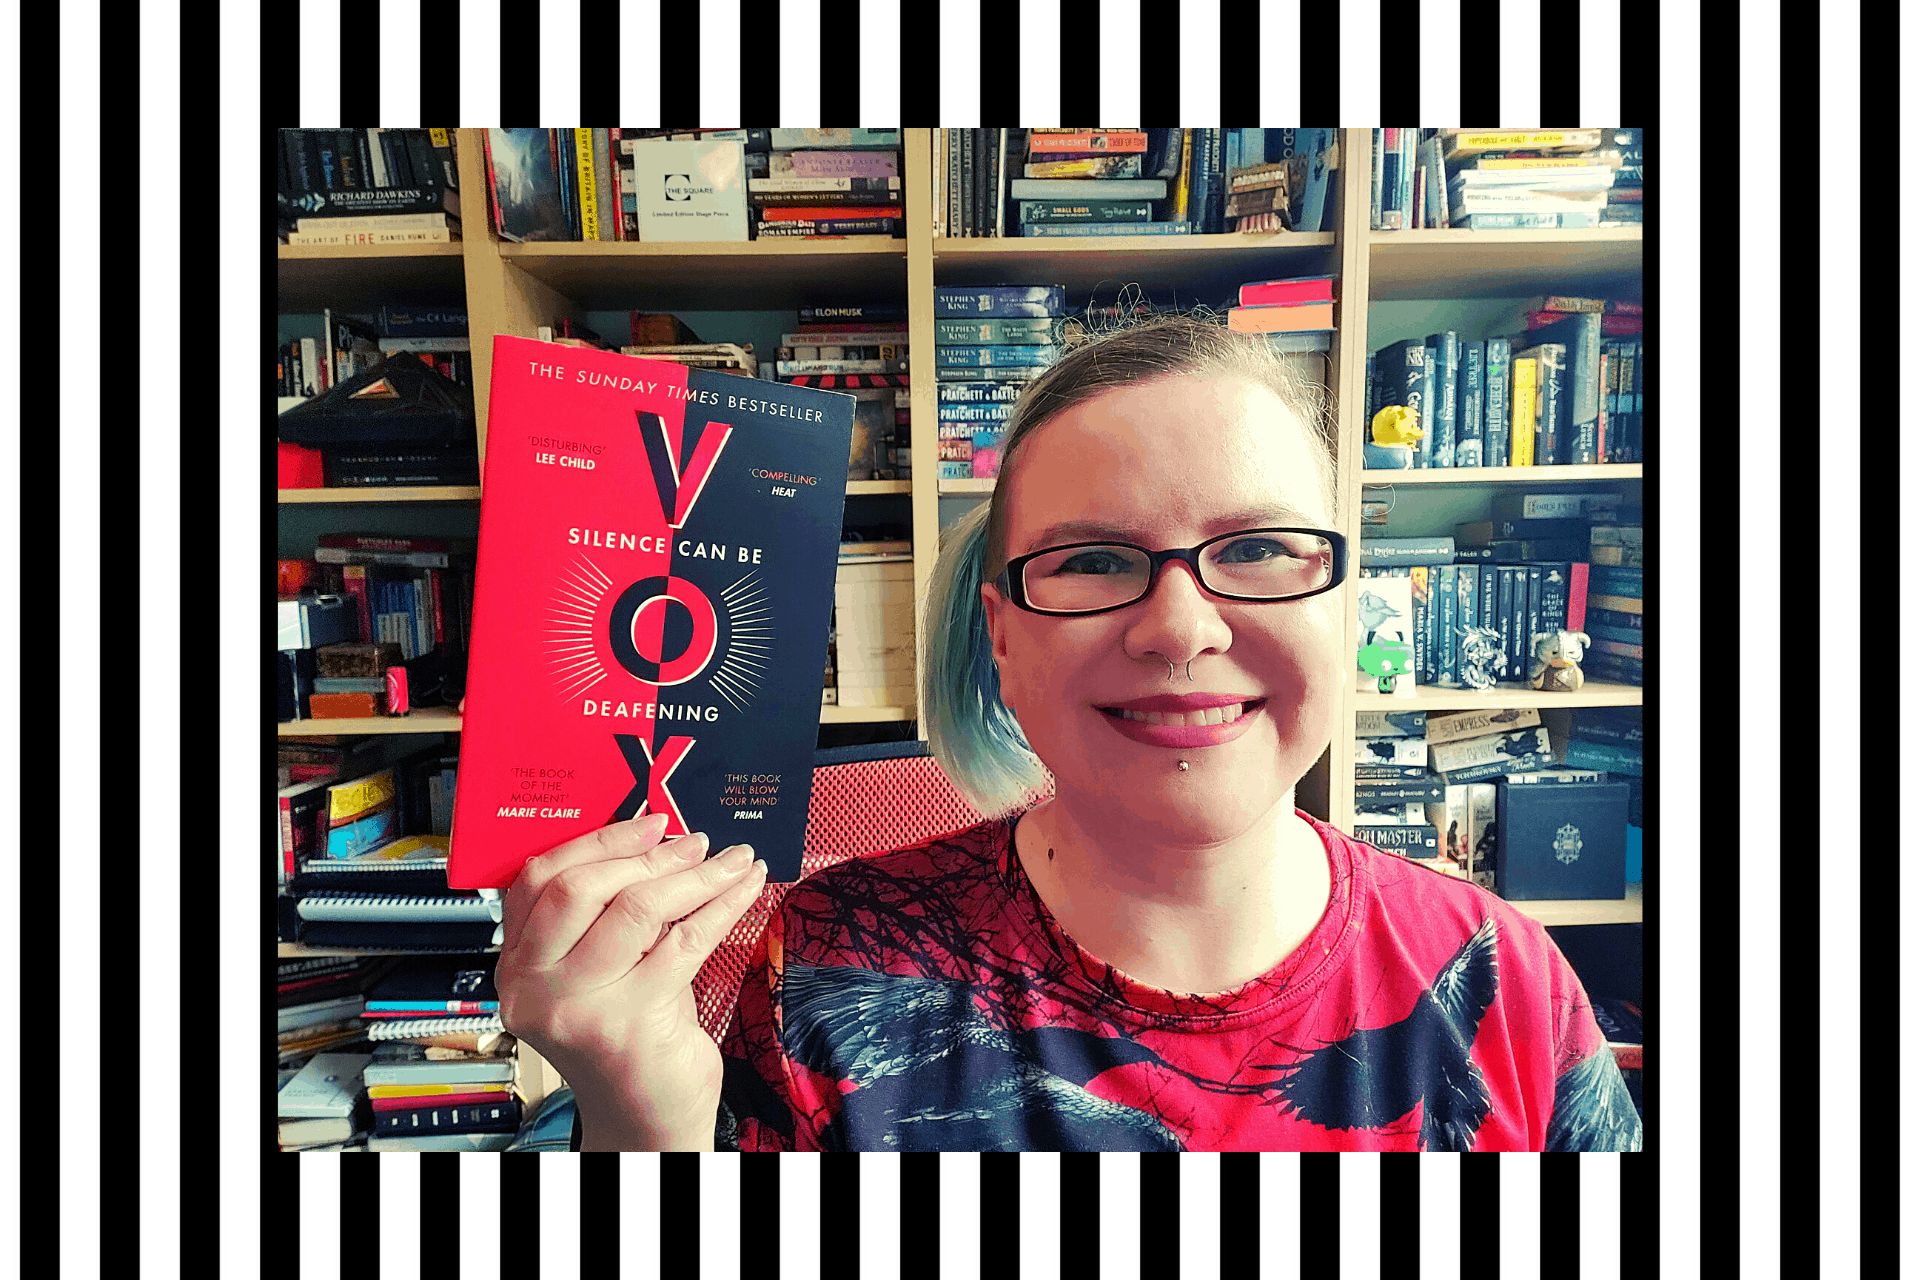 Claire holding VOX by Christina Dalcher, just one of the books read on the week of 22nd June 2020